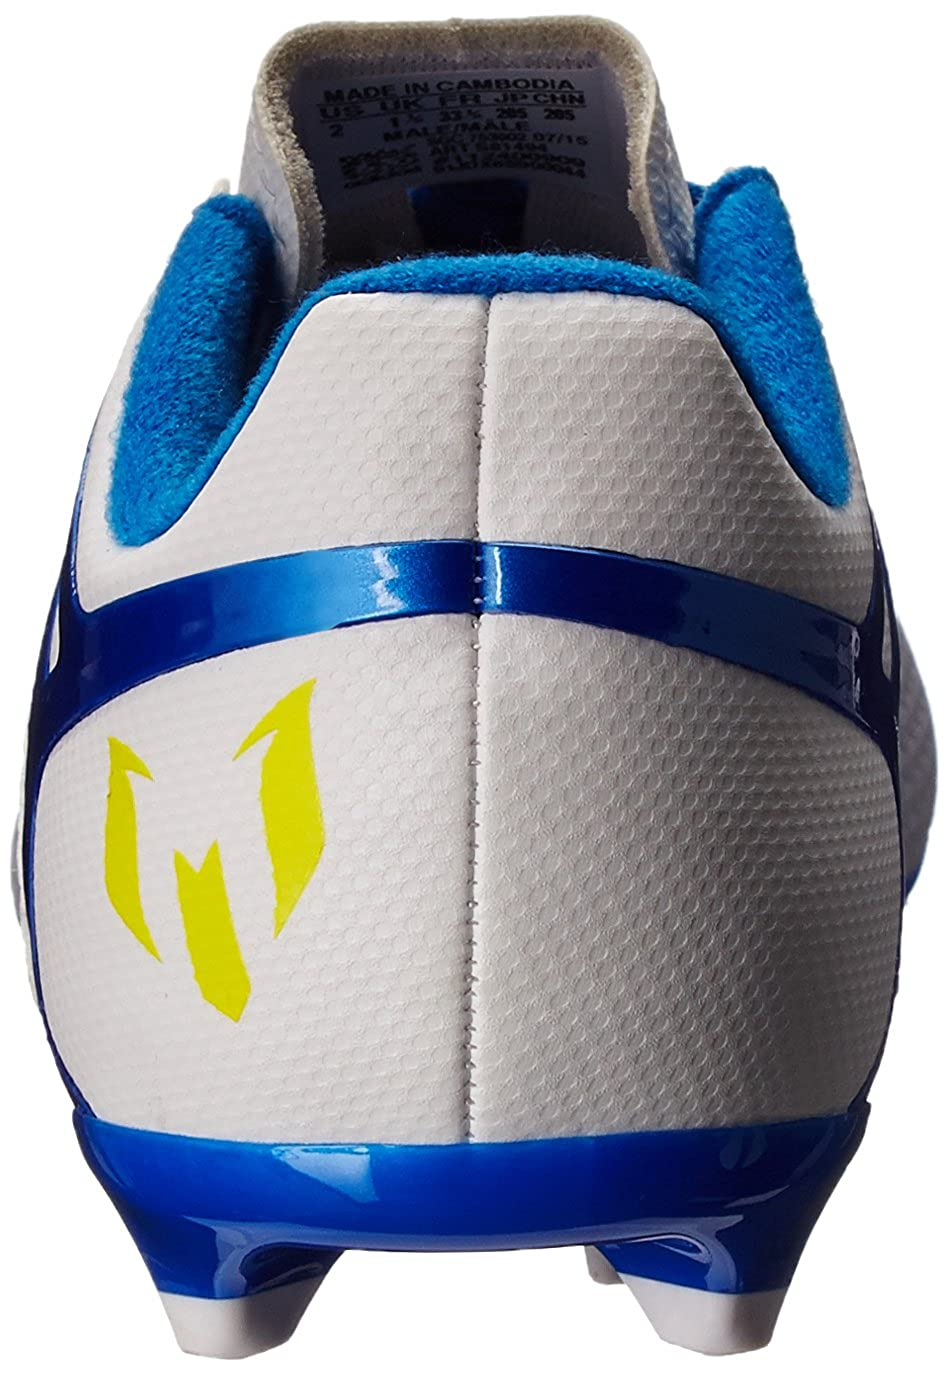 4057305a79a2 Amazon.com | adidas Performance Messi 15.3 FG AG J Soccer Shoe (Little  Kid/Big Kid) | Soccer